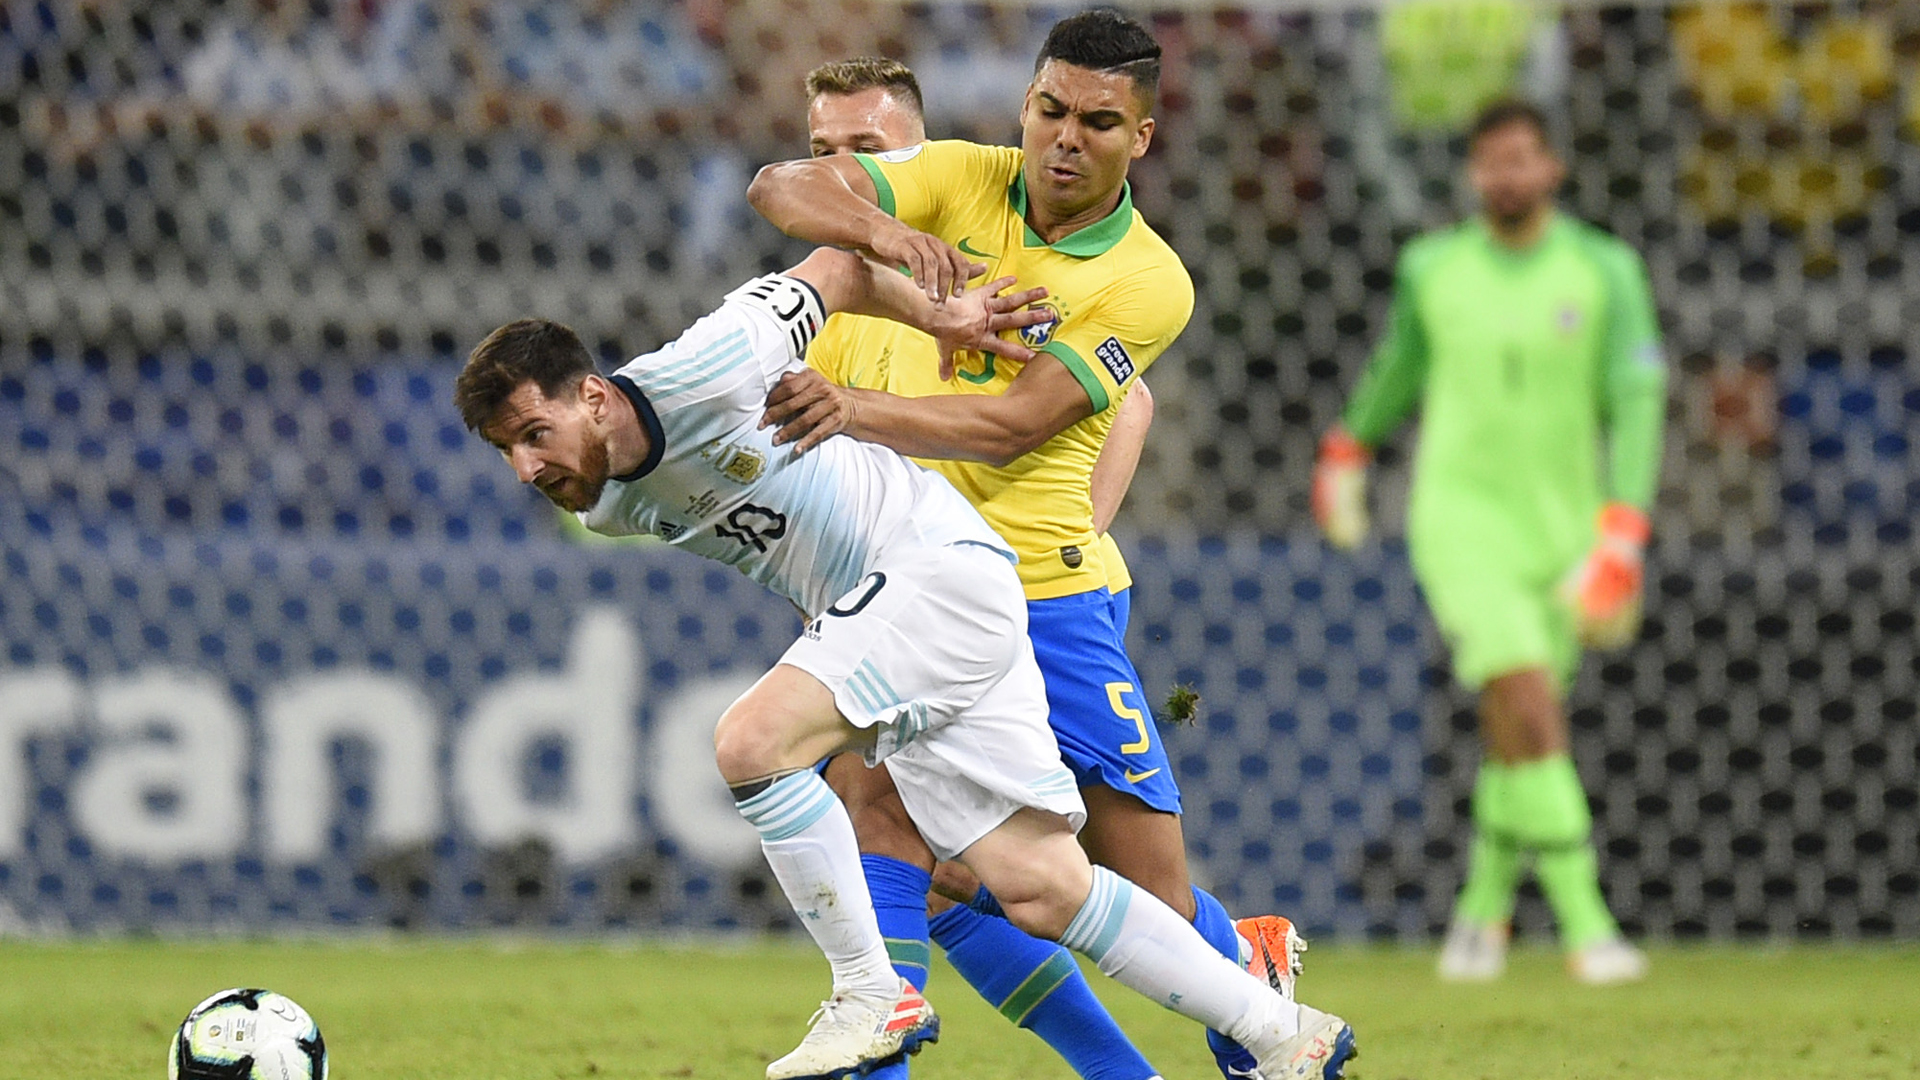 Those who have a mouth speak what they want – Casemiro responds to Messi